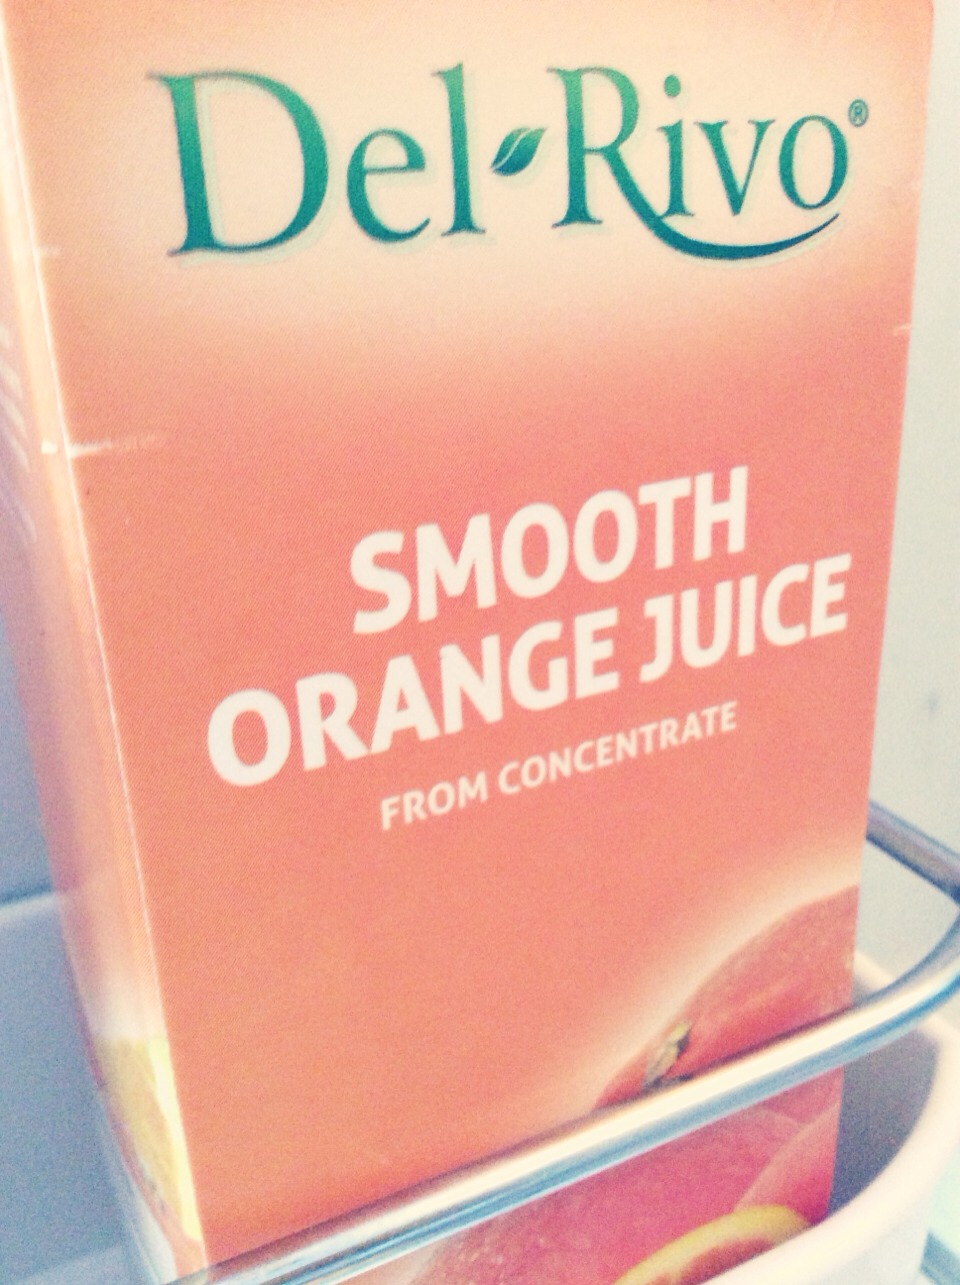 Add 1/3 of a cup of orange juice Add 1/2 cup of sugar/salt depending on ur preference.